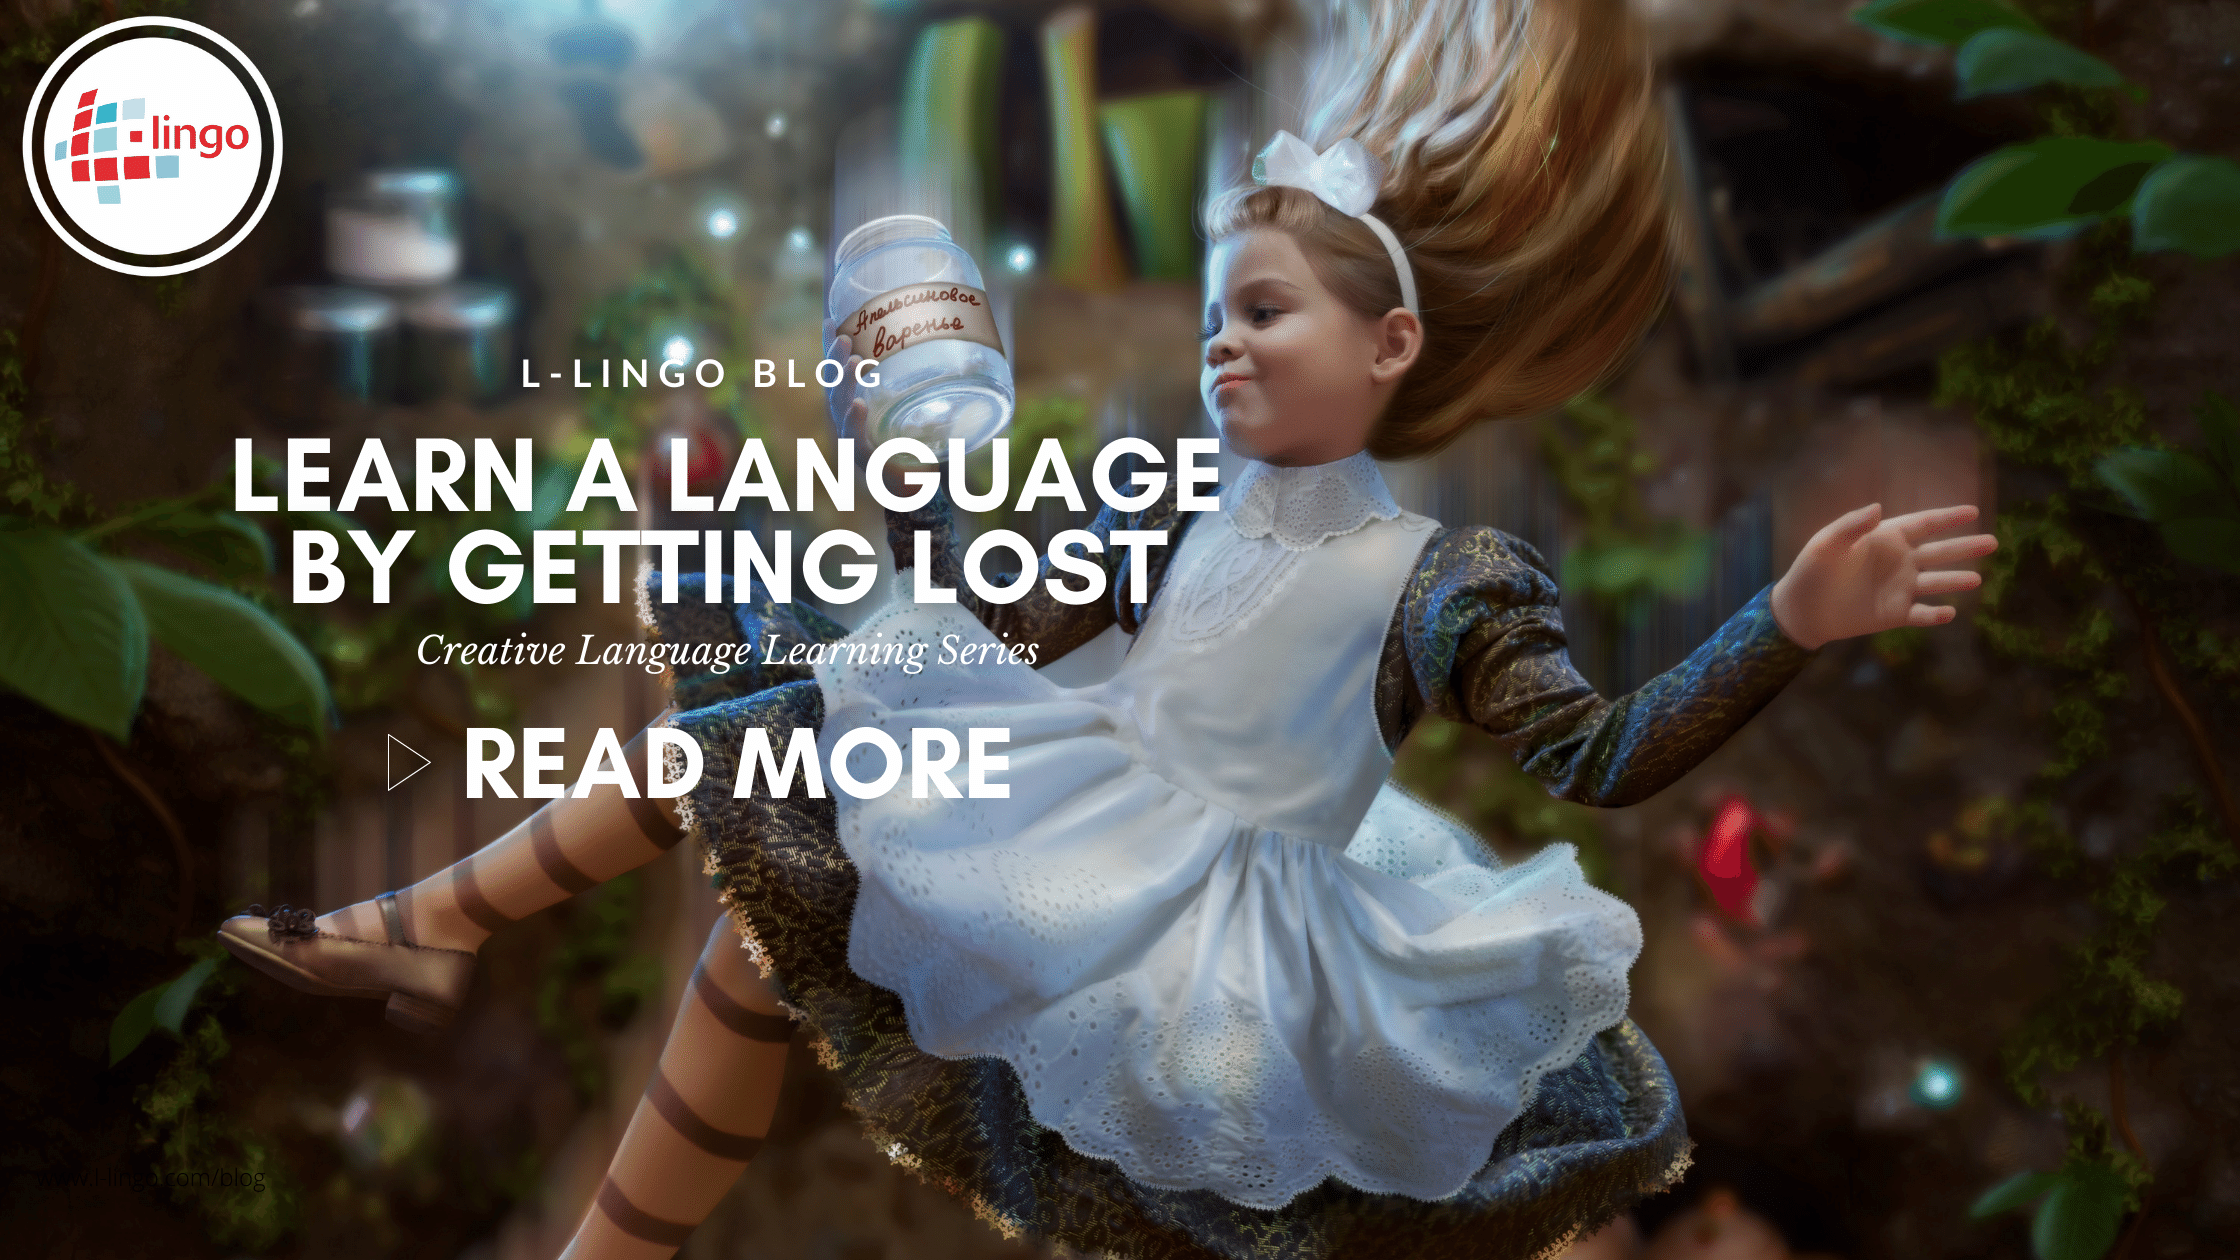 How To Learn A Language By Getting Lost: L-Lingo Blog